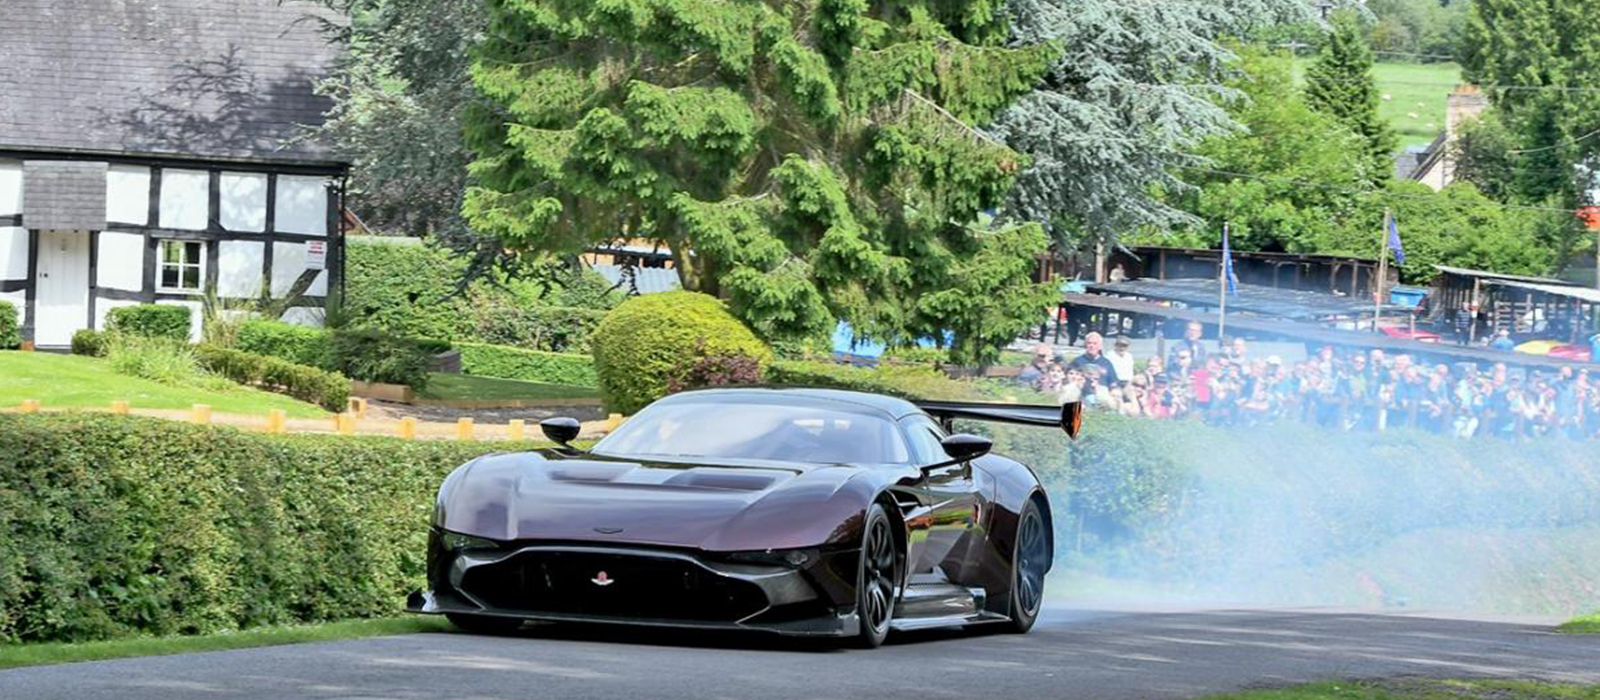 Aston-Martin-Vulcan-Shelsely-Walsh-Hill-Climb-Motorsport-Insurance.jpg